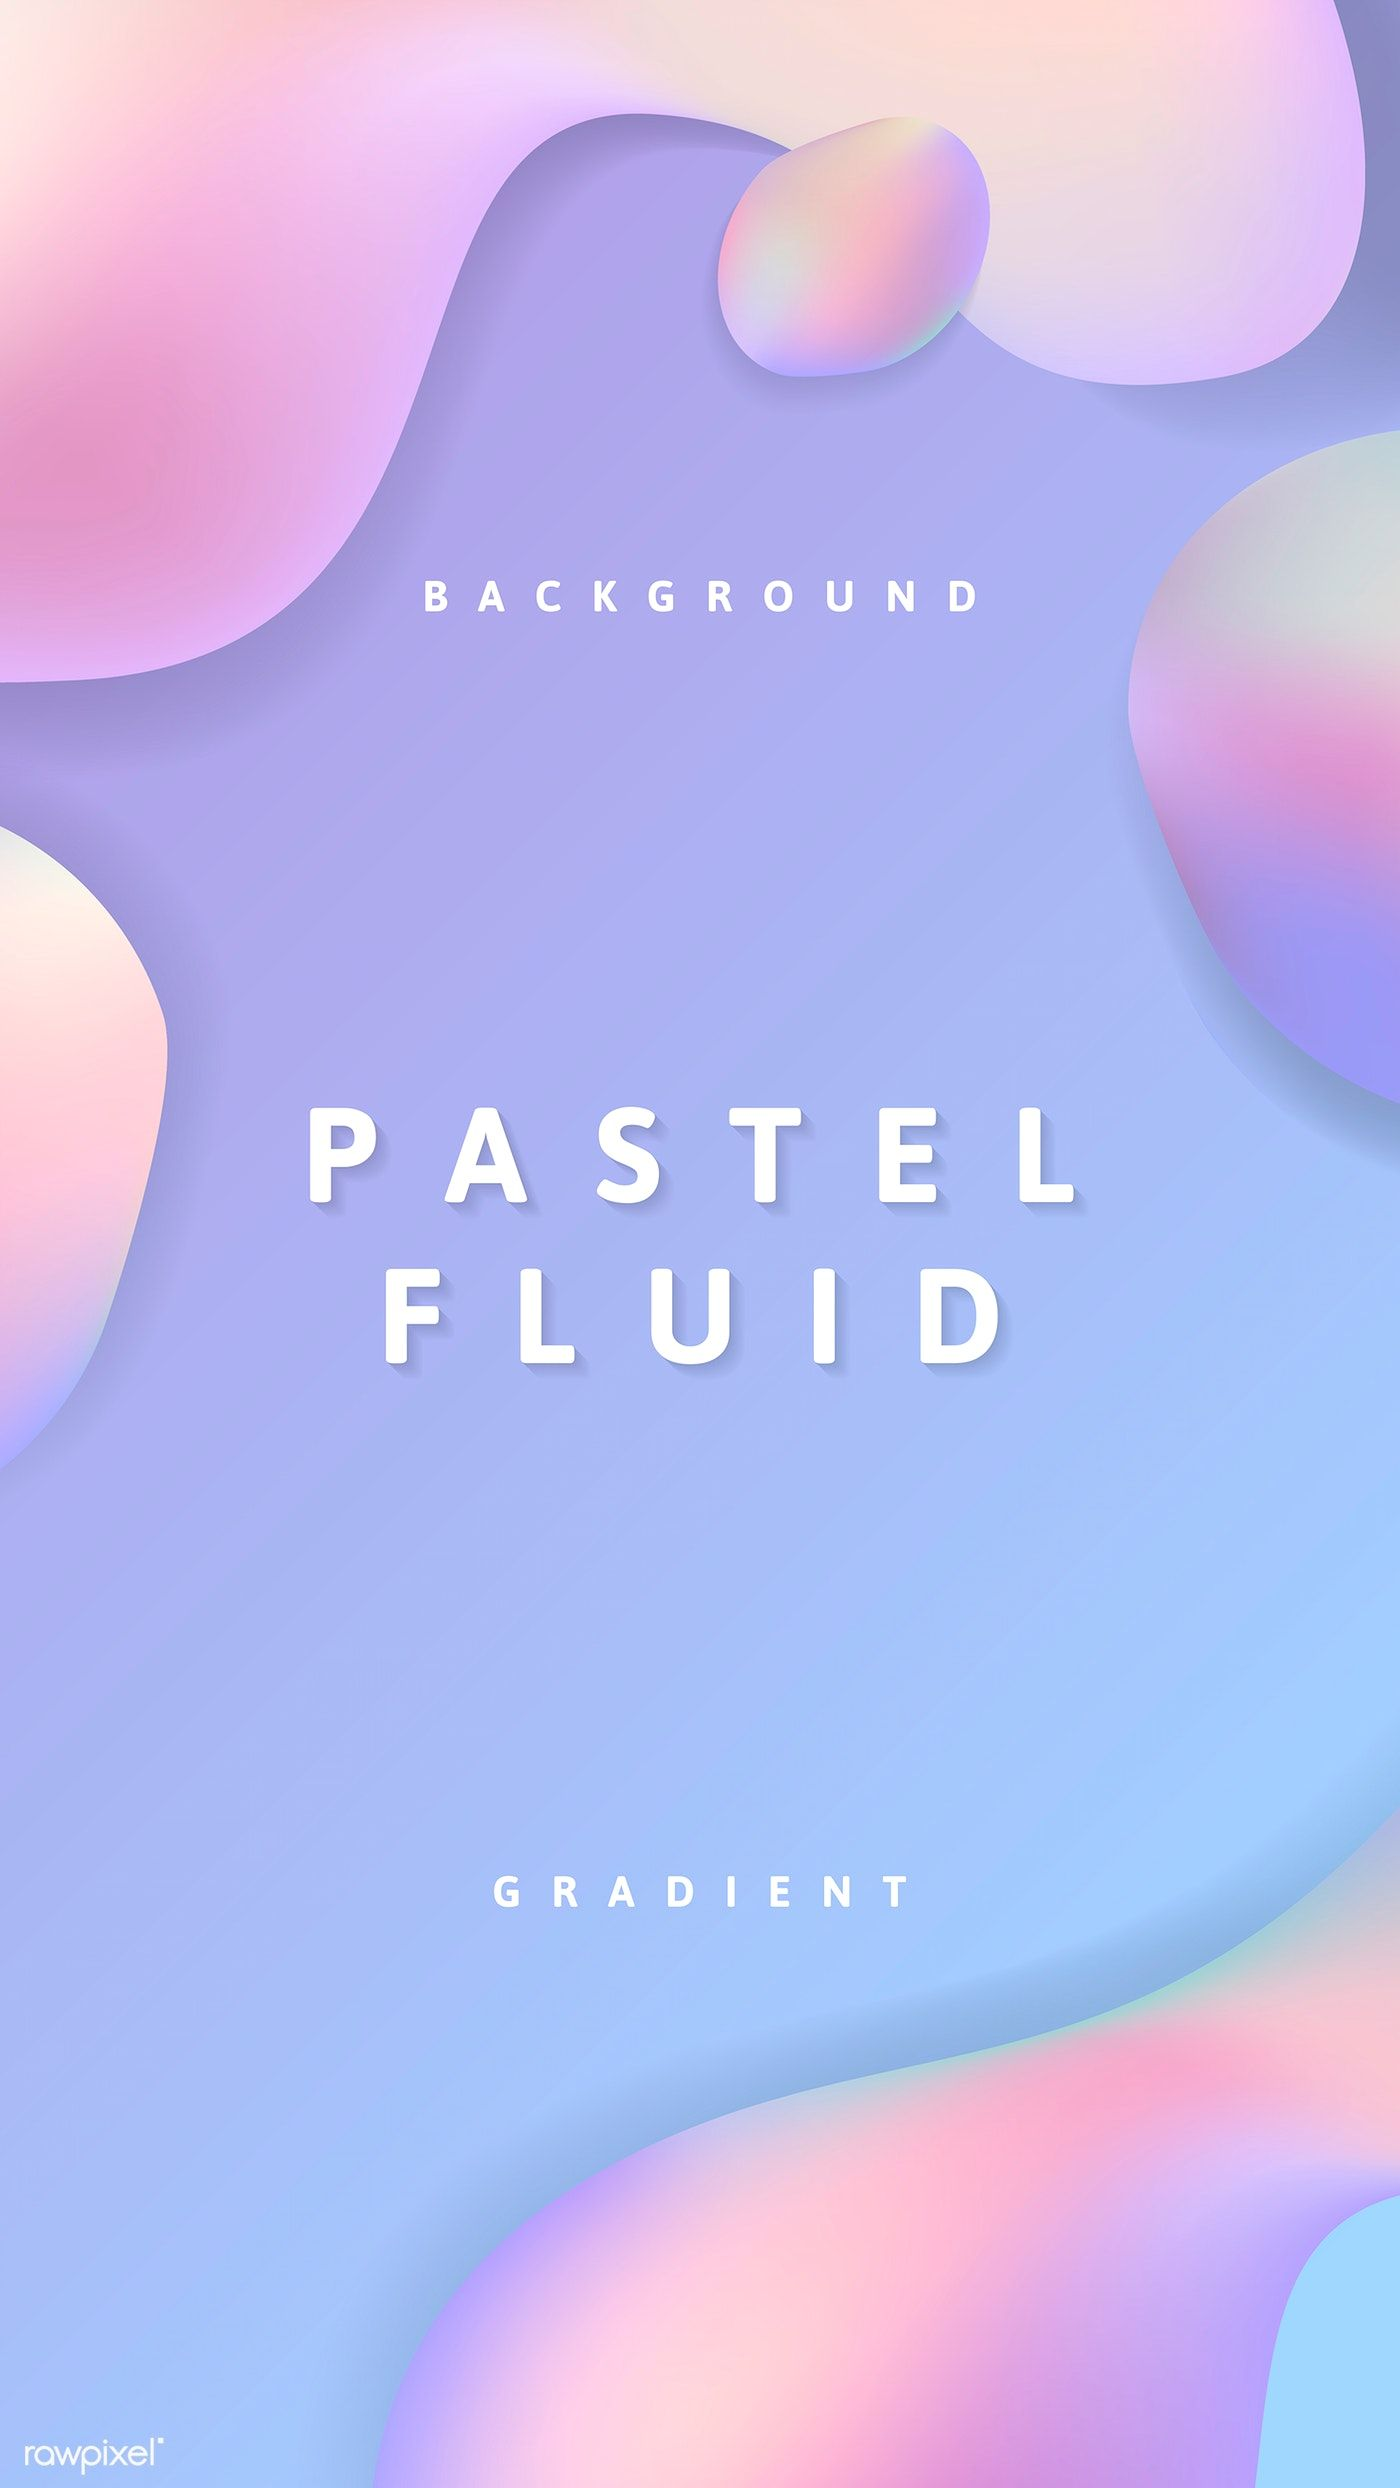 Purple Pastel Fluid Design Poster Vector Free Image By Rawpixel